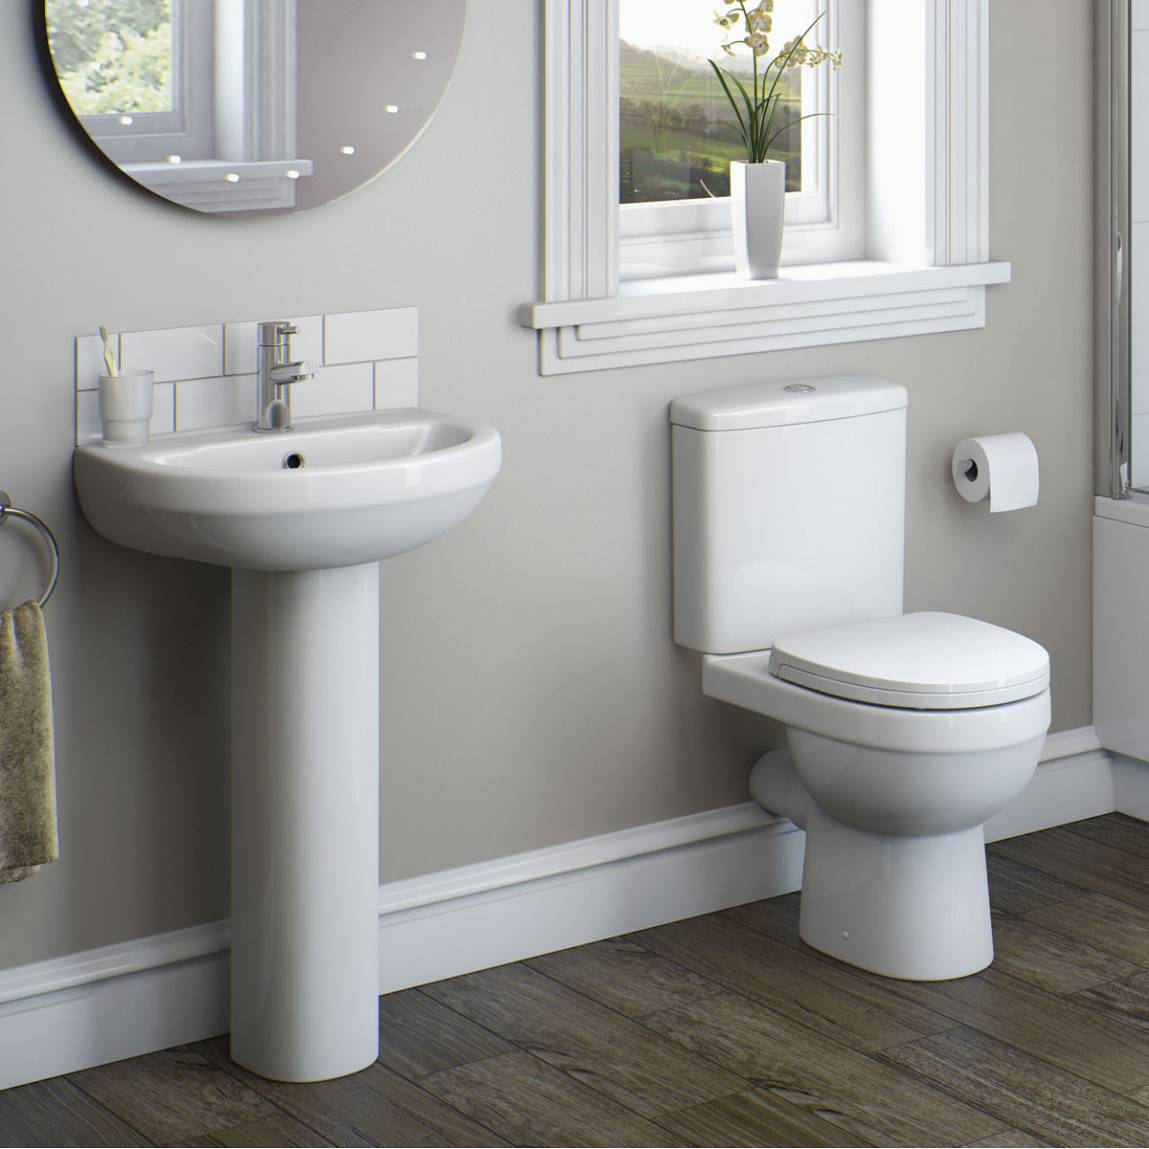 style the redesign bathroom sink depth affordable narrow vanities shocking extra of compact home u and inspiration options corner